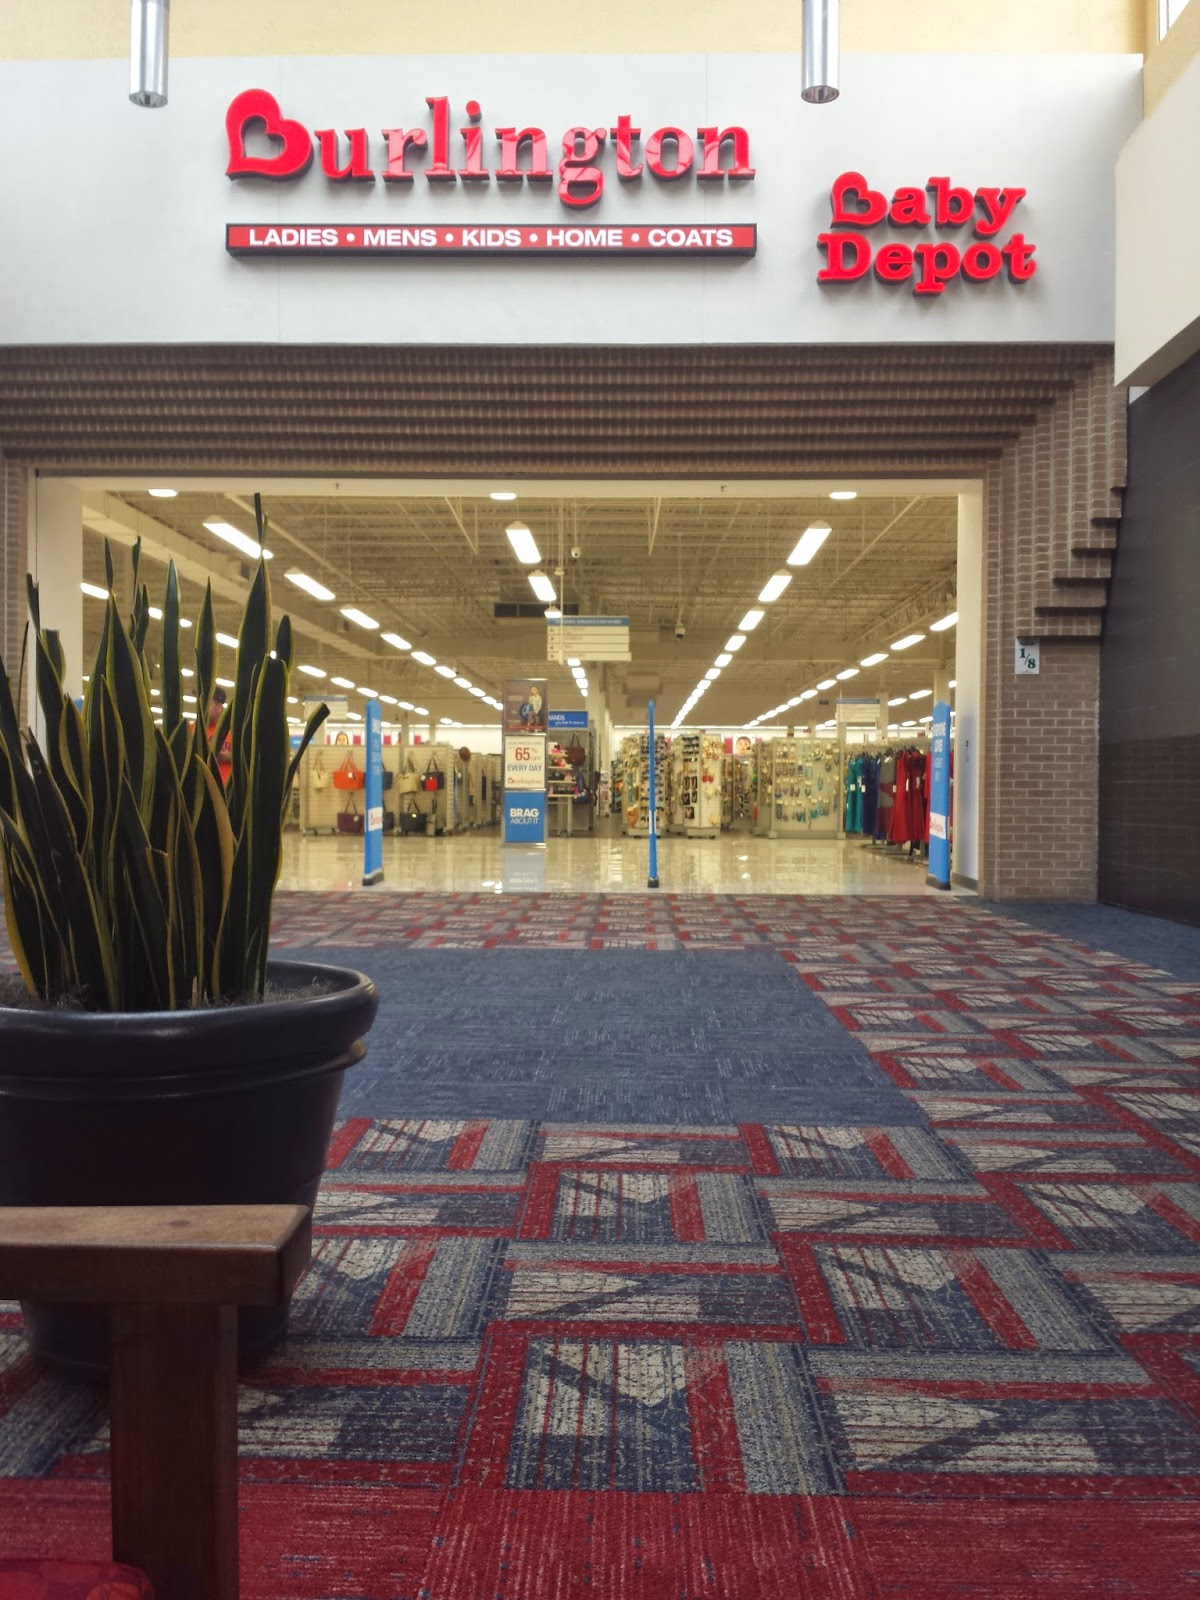 Get directions, reviews and information for Burlington Coat Factory in Killeen, TX. Burlington Coat Factory S W S Young Dr Killeen TX 8 Reviews () Website. Menu & Reservations Make Reservations. Order Online Tickets Tickets See Availability 6/10(7).